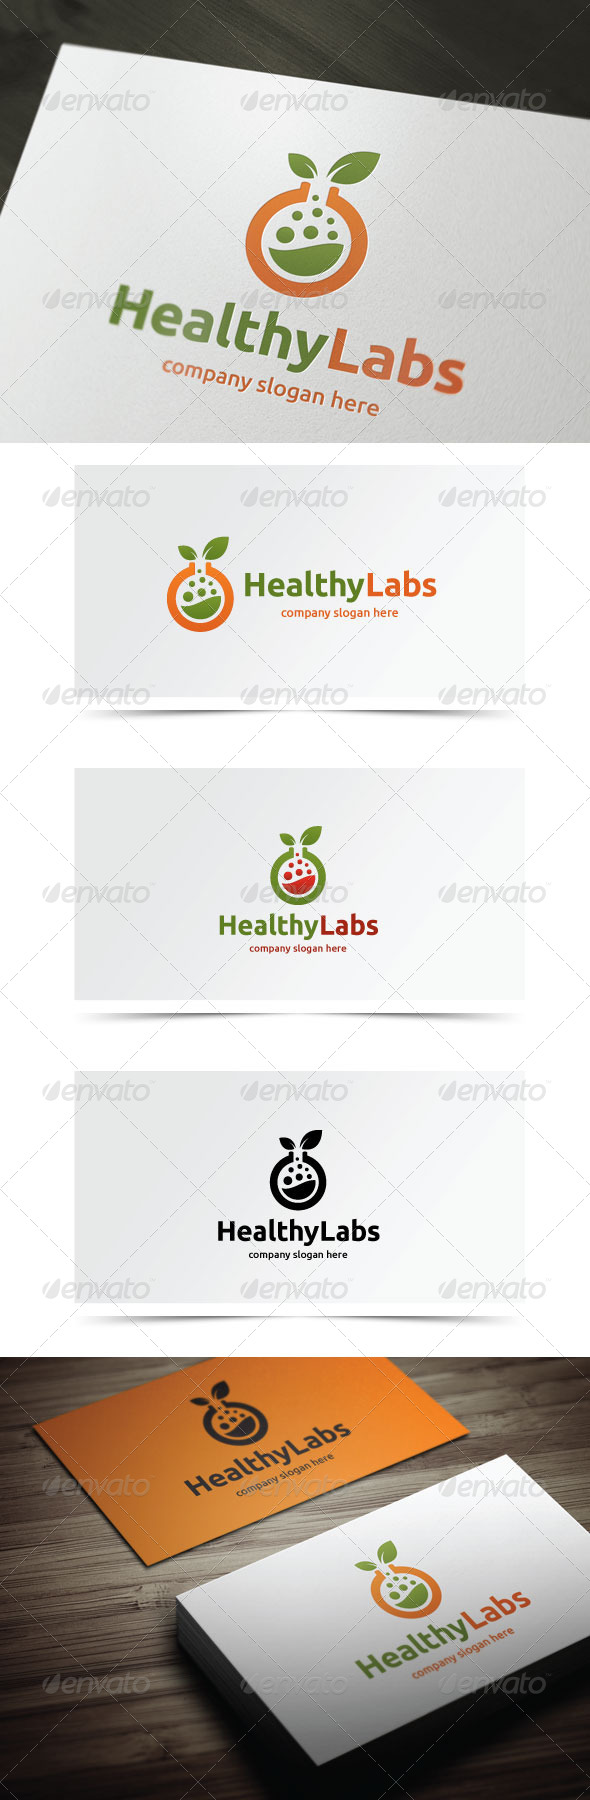 Healthy Labs